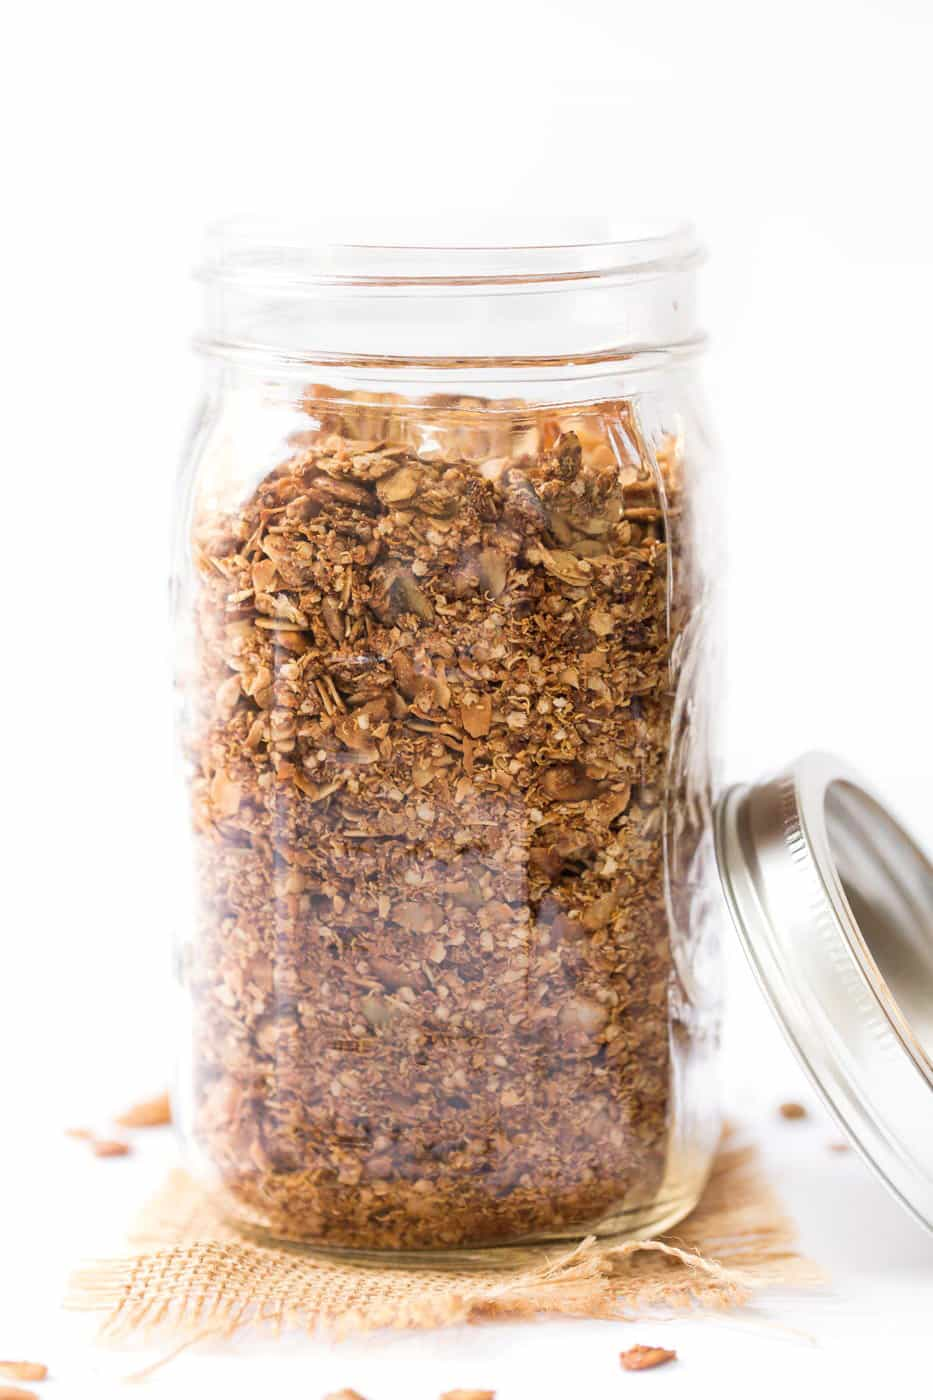 This Maple Quinoa Granola uses a blend of rolled oats and quinoa flakes to make the perfect crunchy, clustery texture!